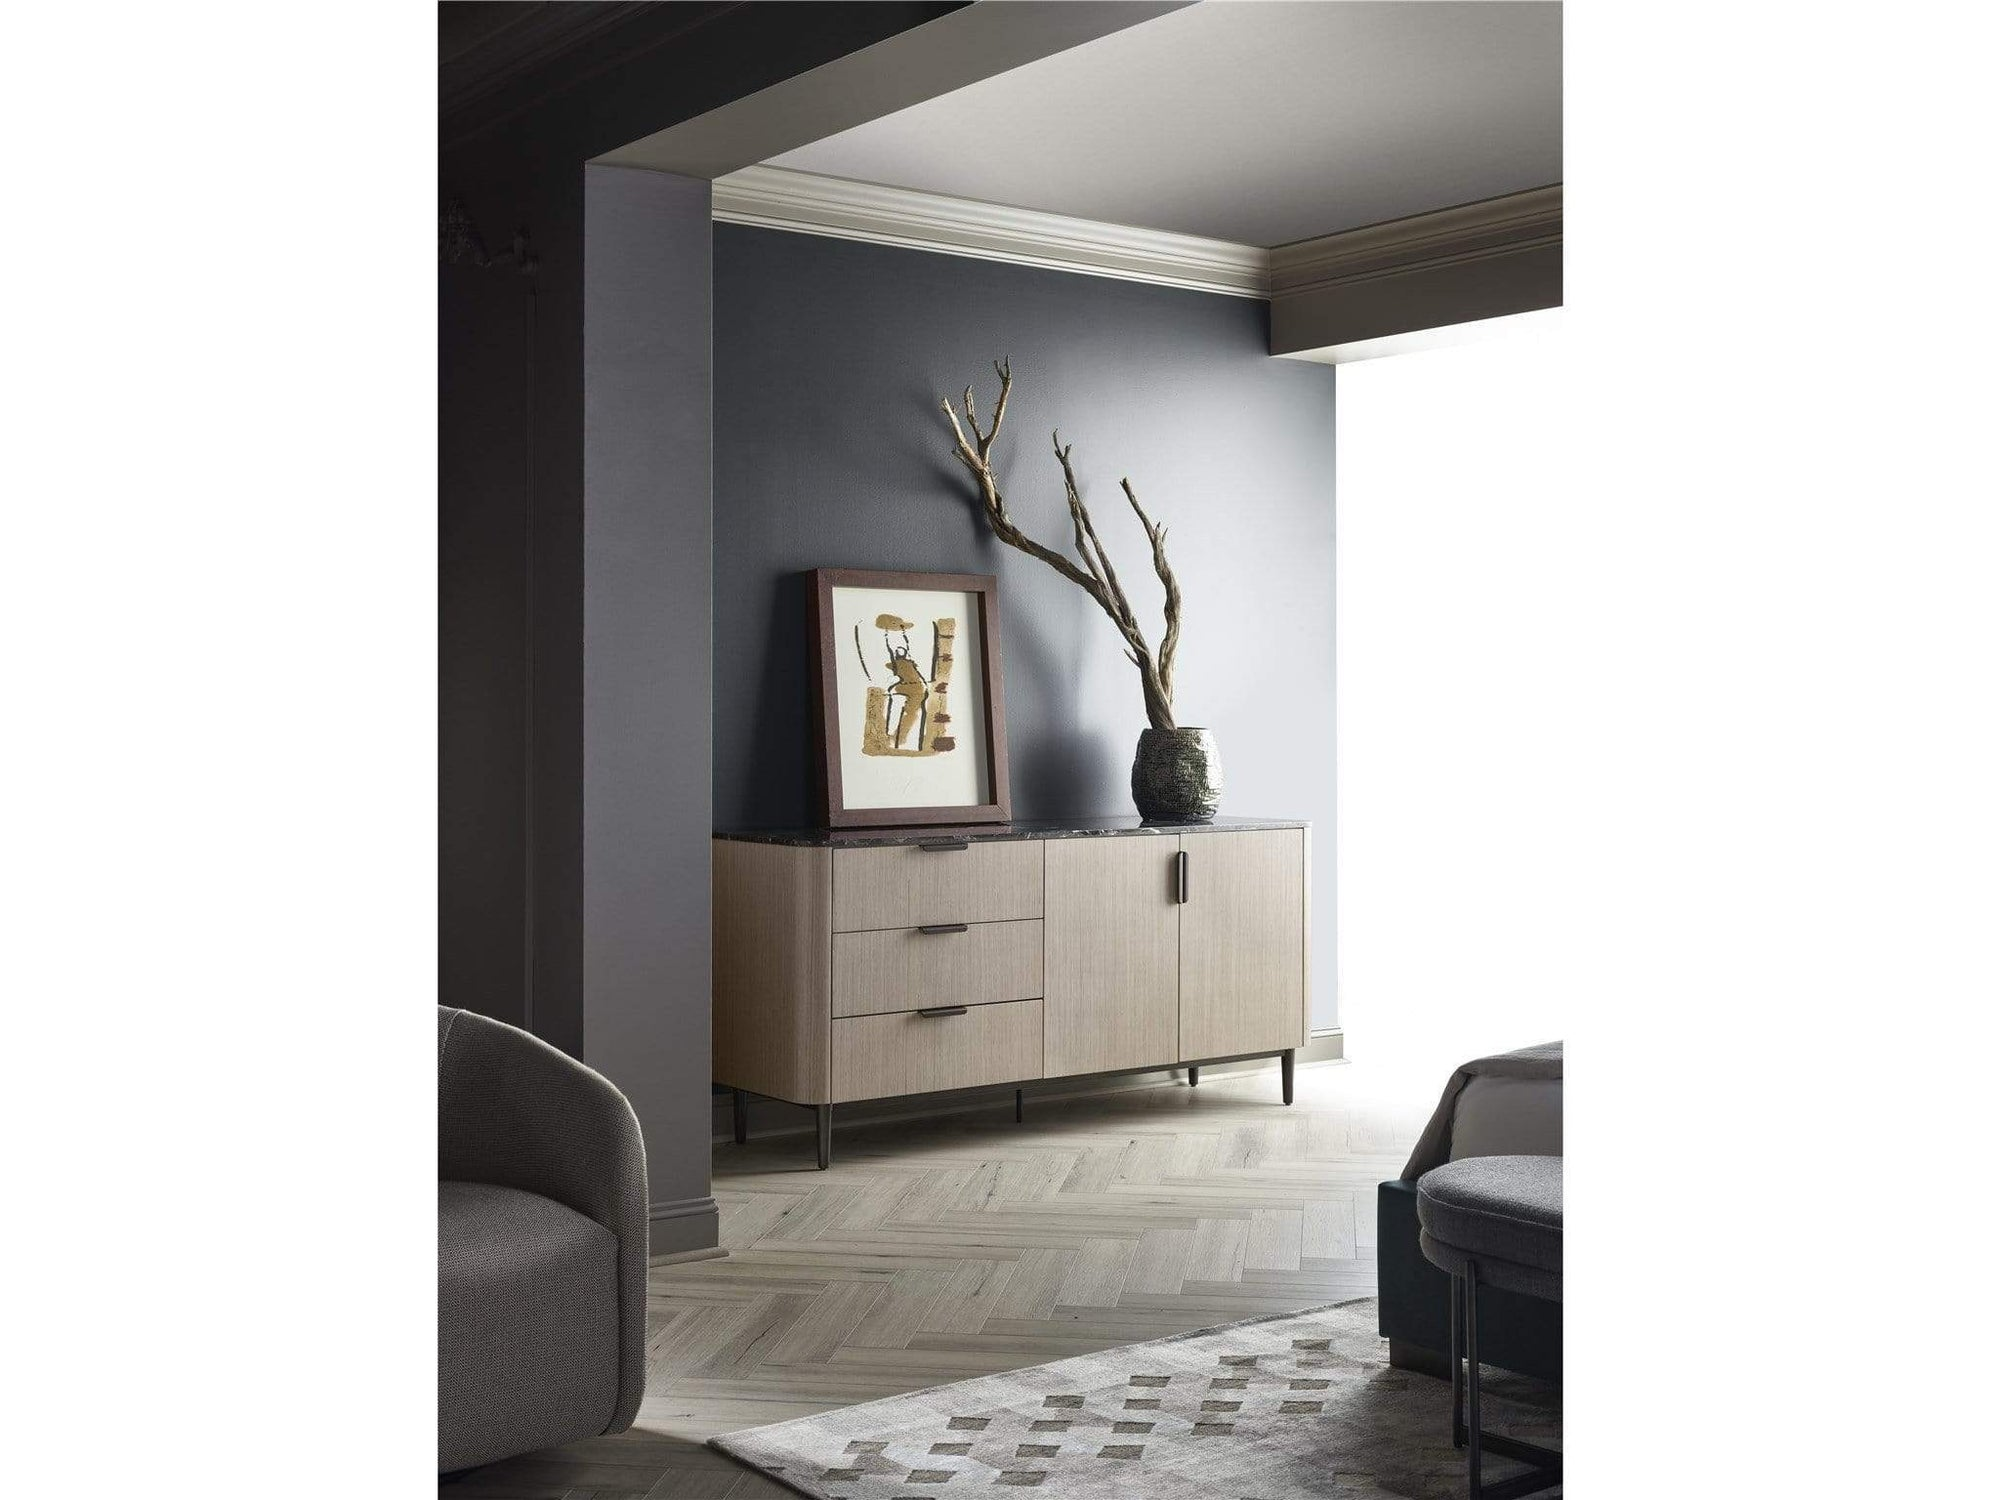 Alchemy Living Alchemy Living Urbain Manila Door Dresser - Black and Beige 807223